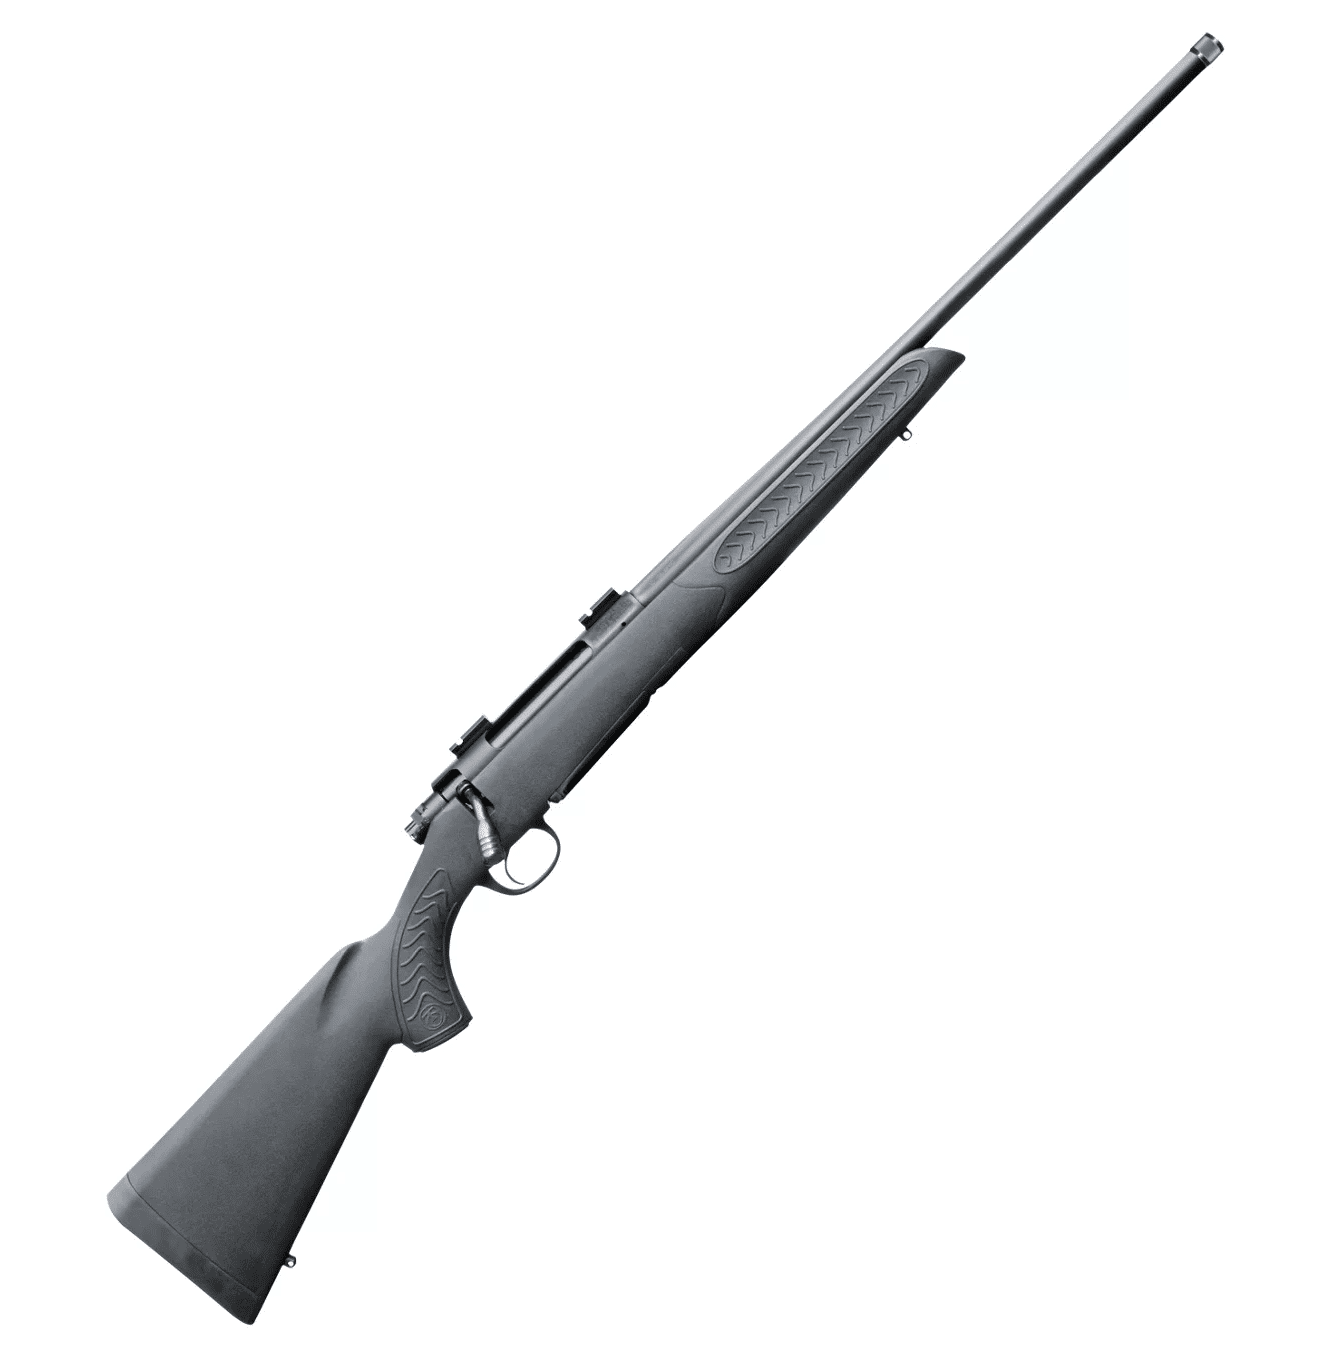 Thompson Center Compass Centerfire Bolt-Action Rifle for Hunting